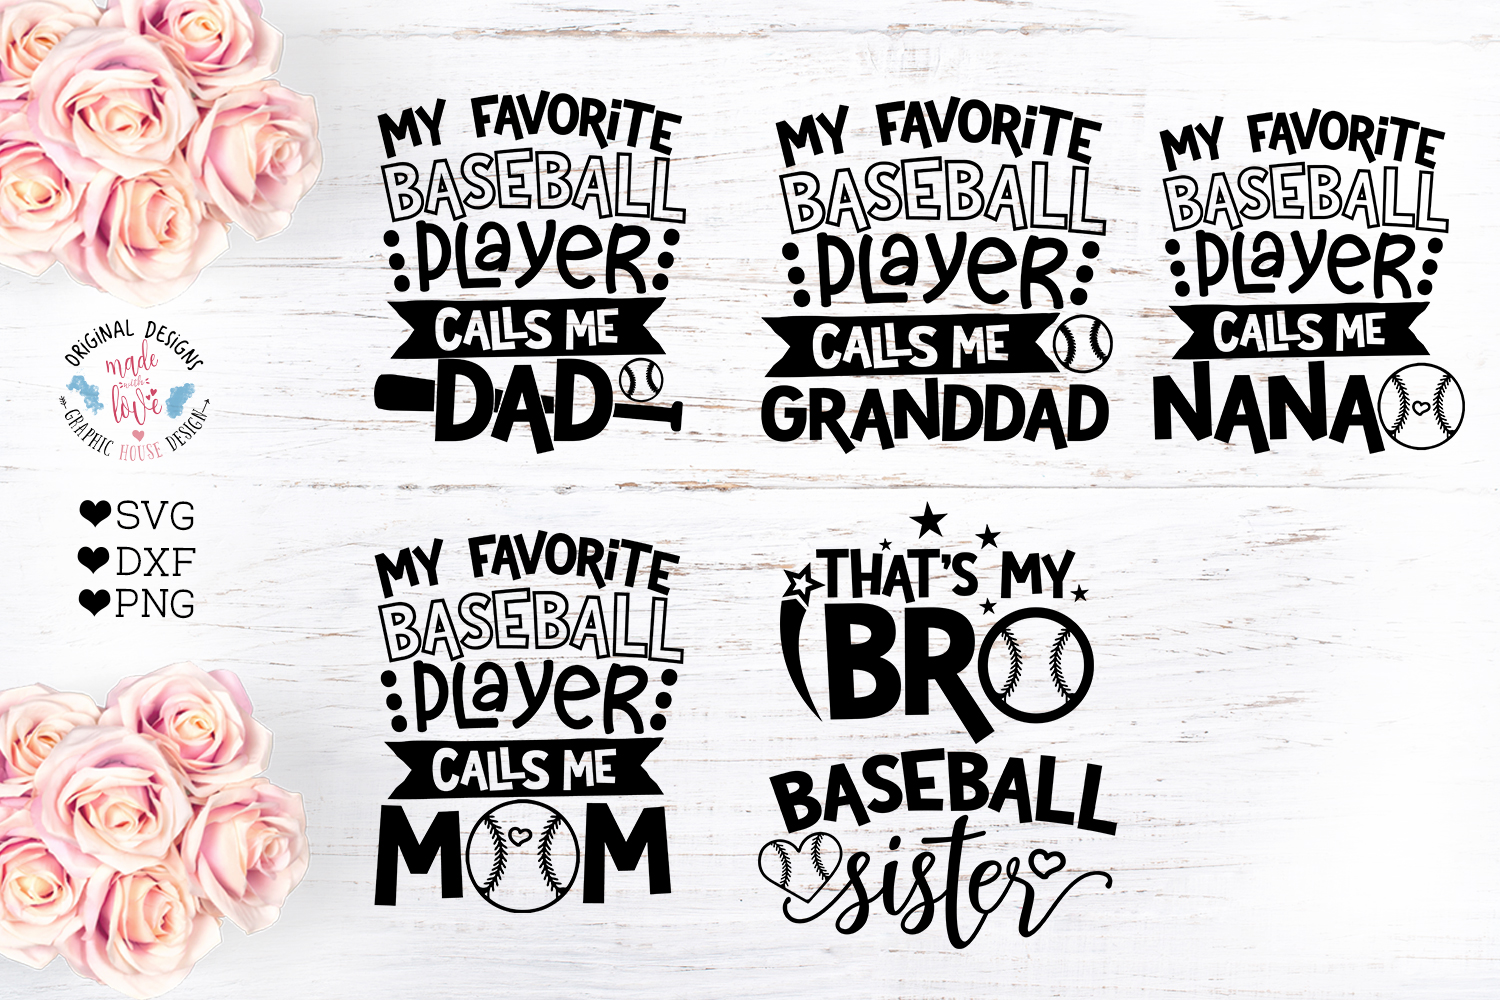 Download Free Baseball Quotes Graphic By Graphichousedesign Creative Fabrica for Cricut Explore, Silhouette and other cutting machines.